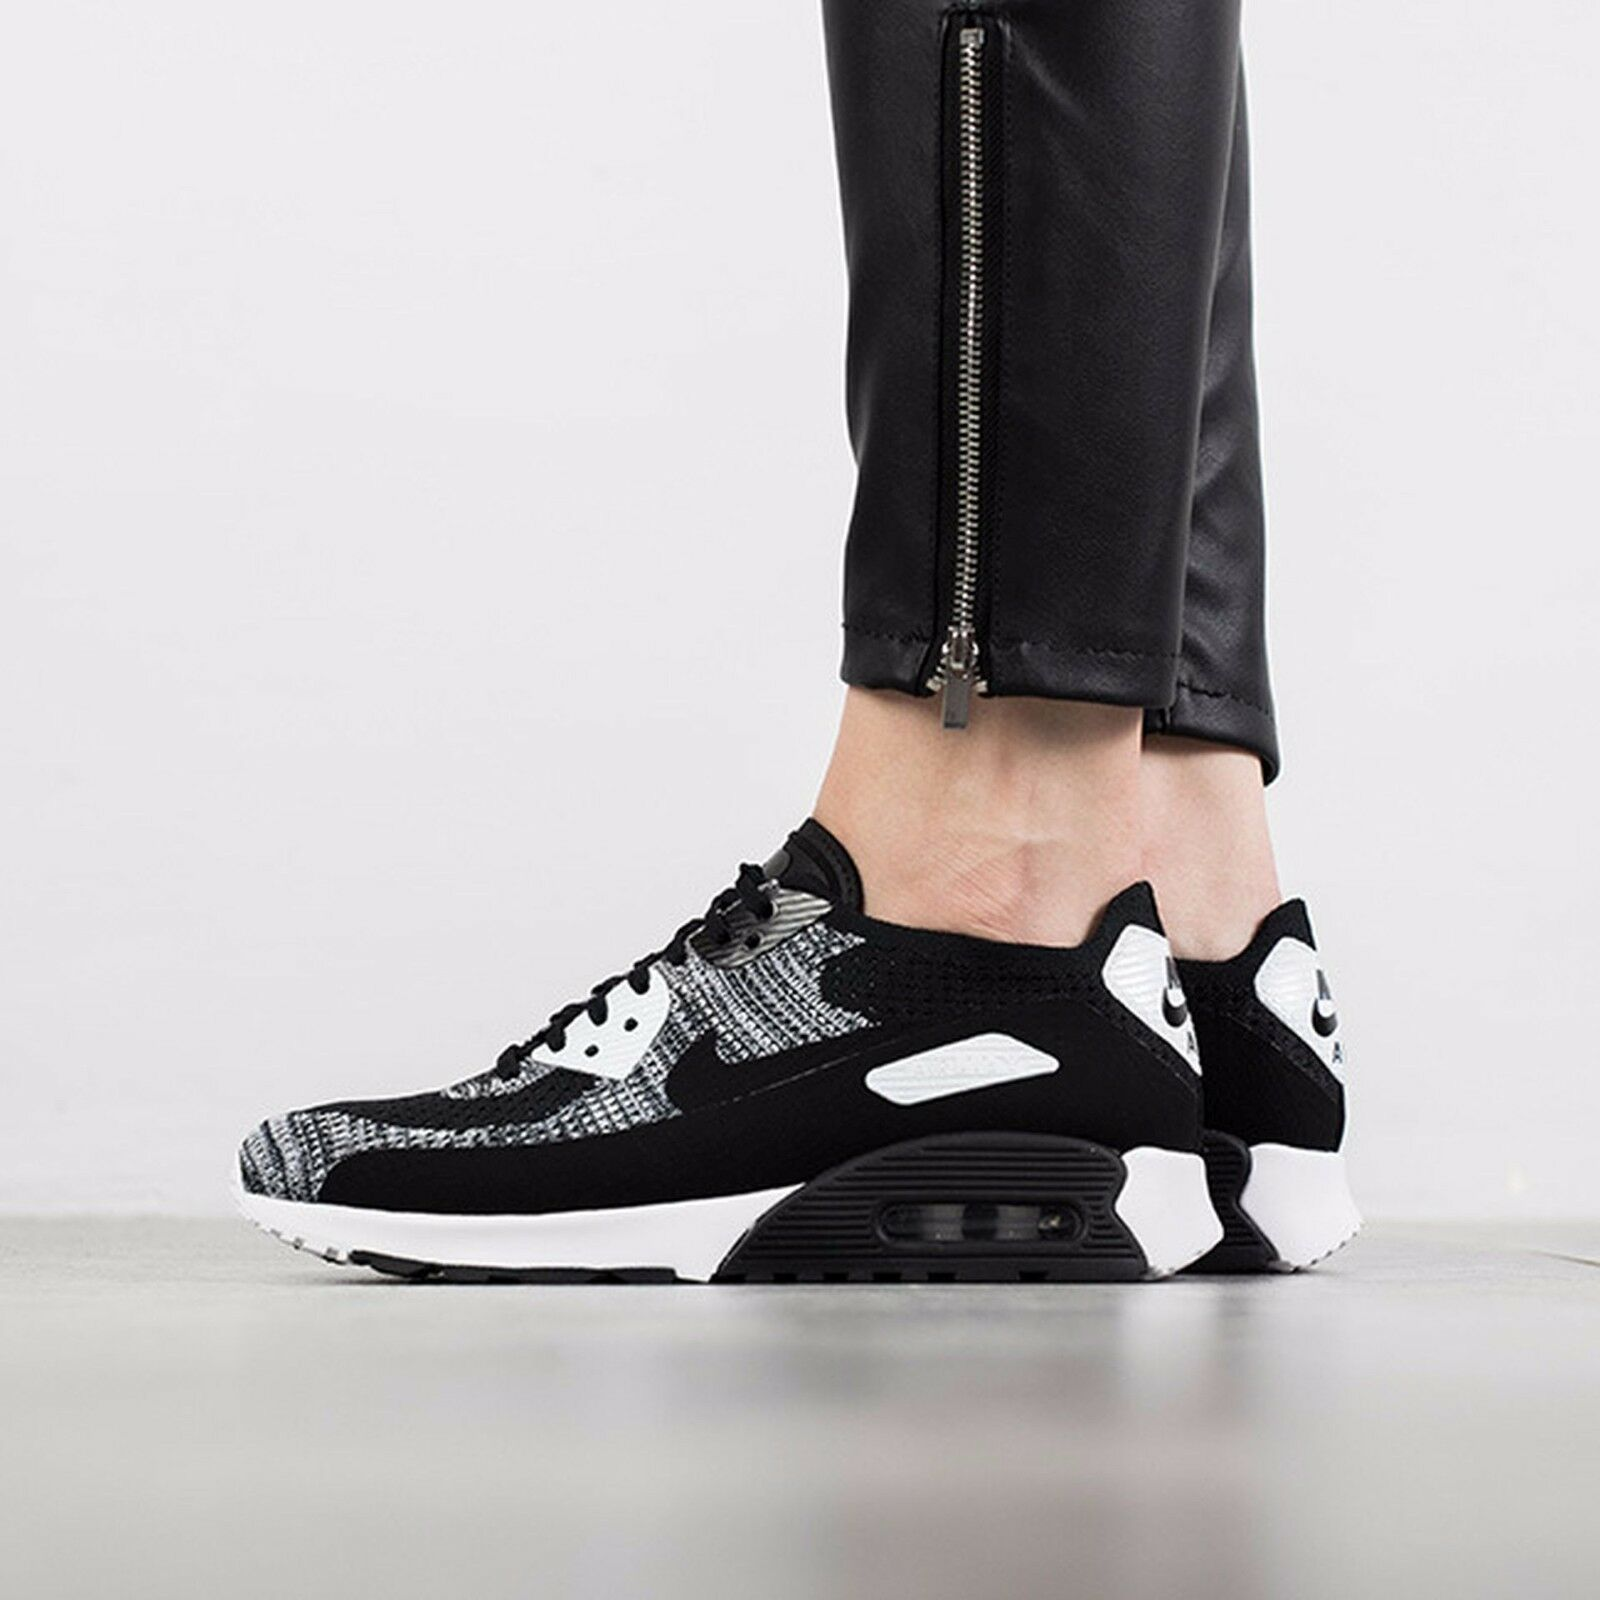 Nike Air Max 90 Ultra 2.0 Flyknit Wmn Sz 6 Black White Anthracite 881109-002